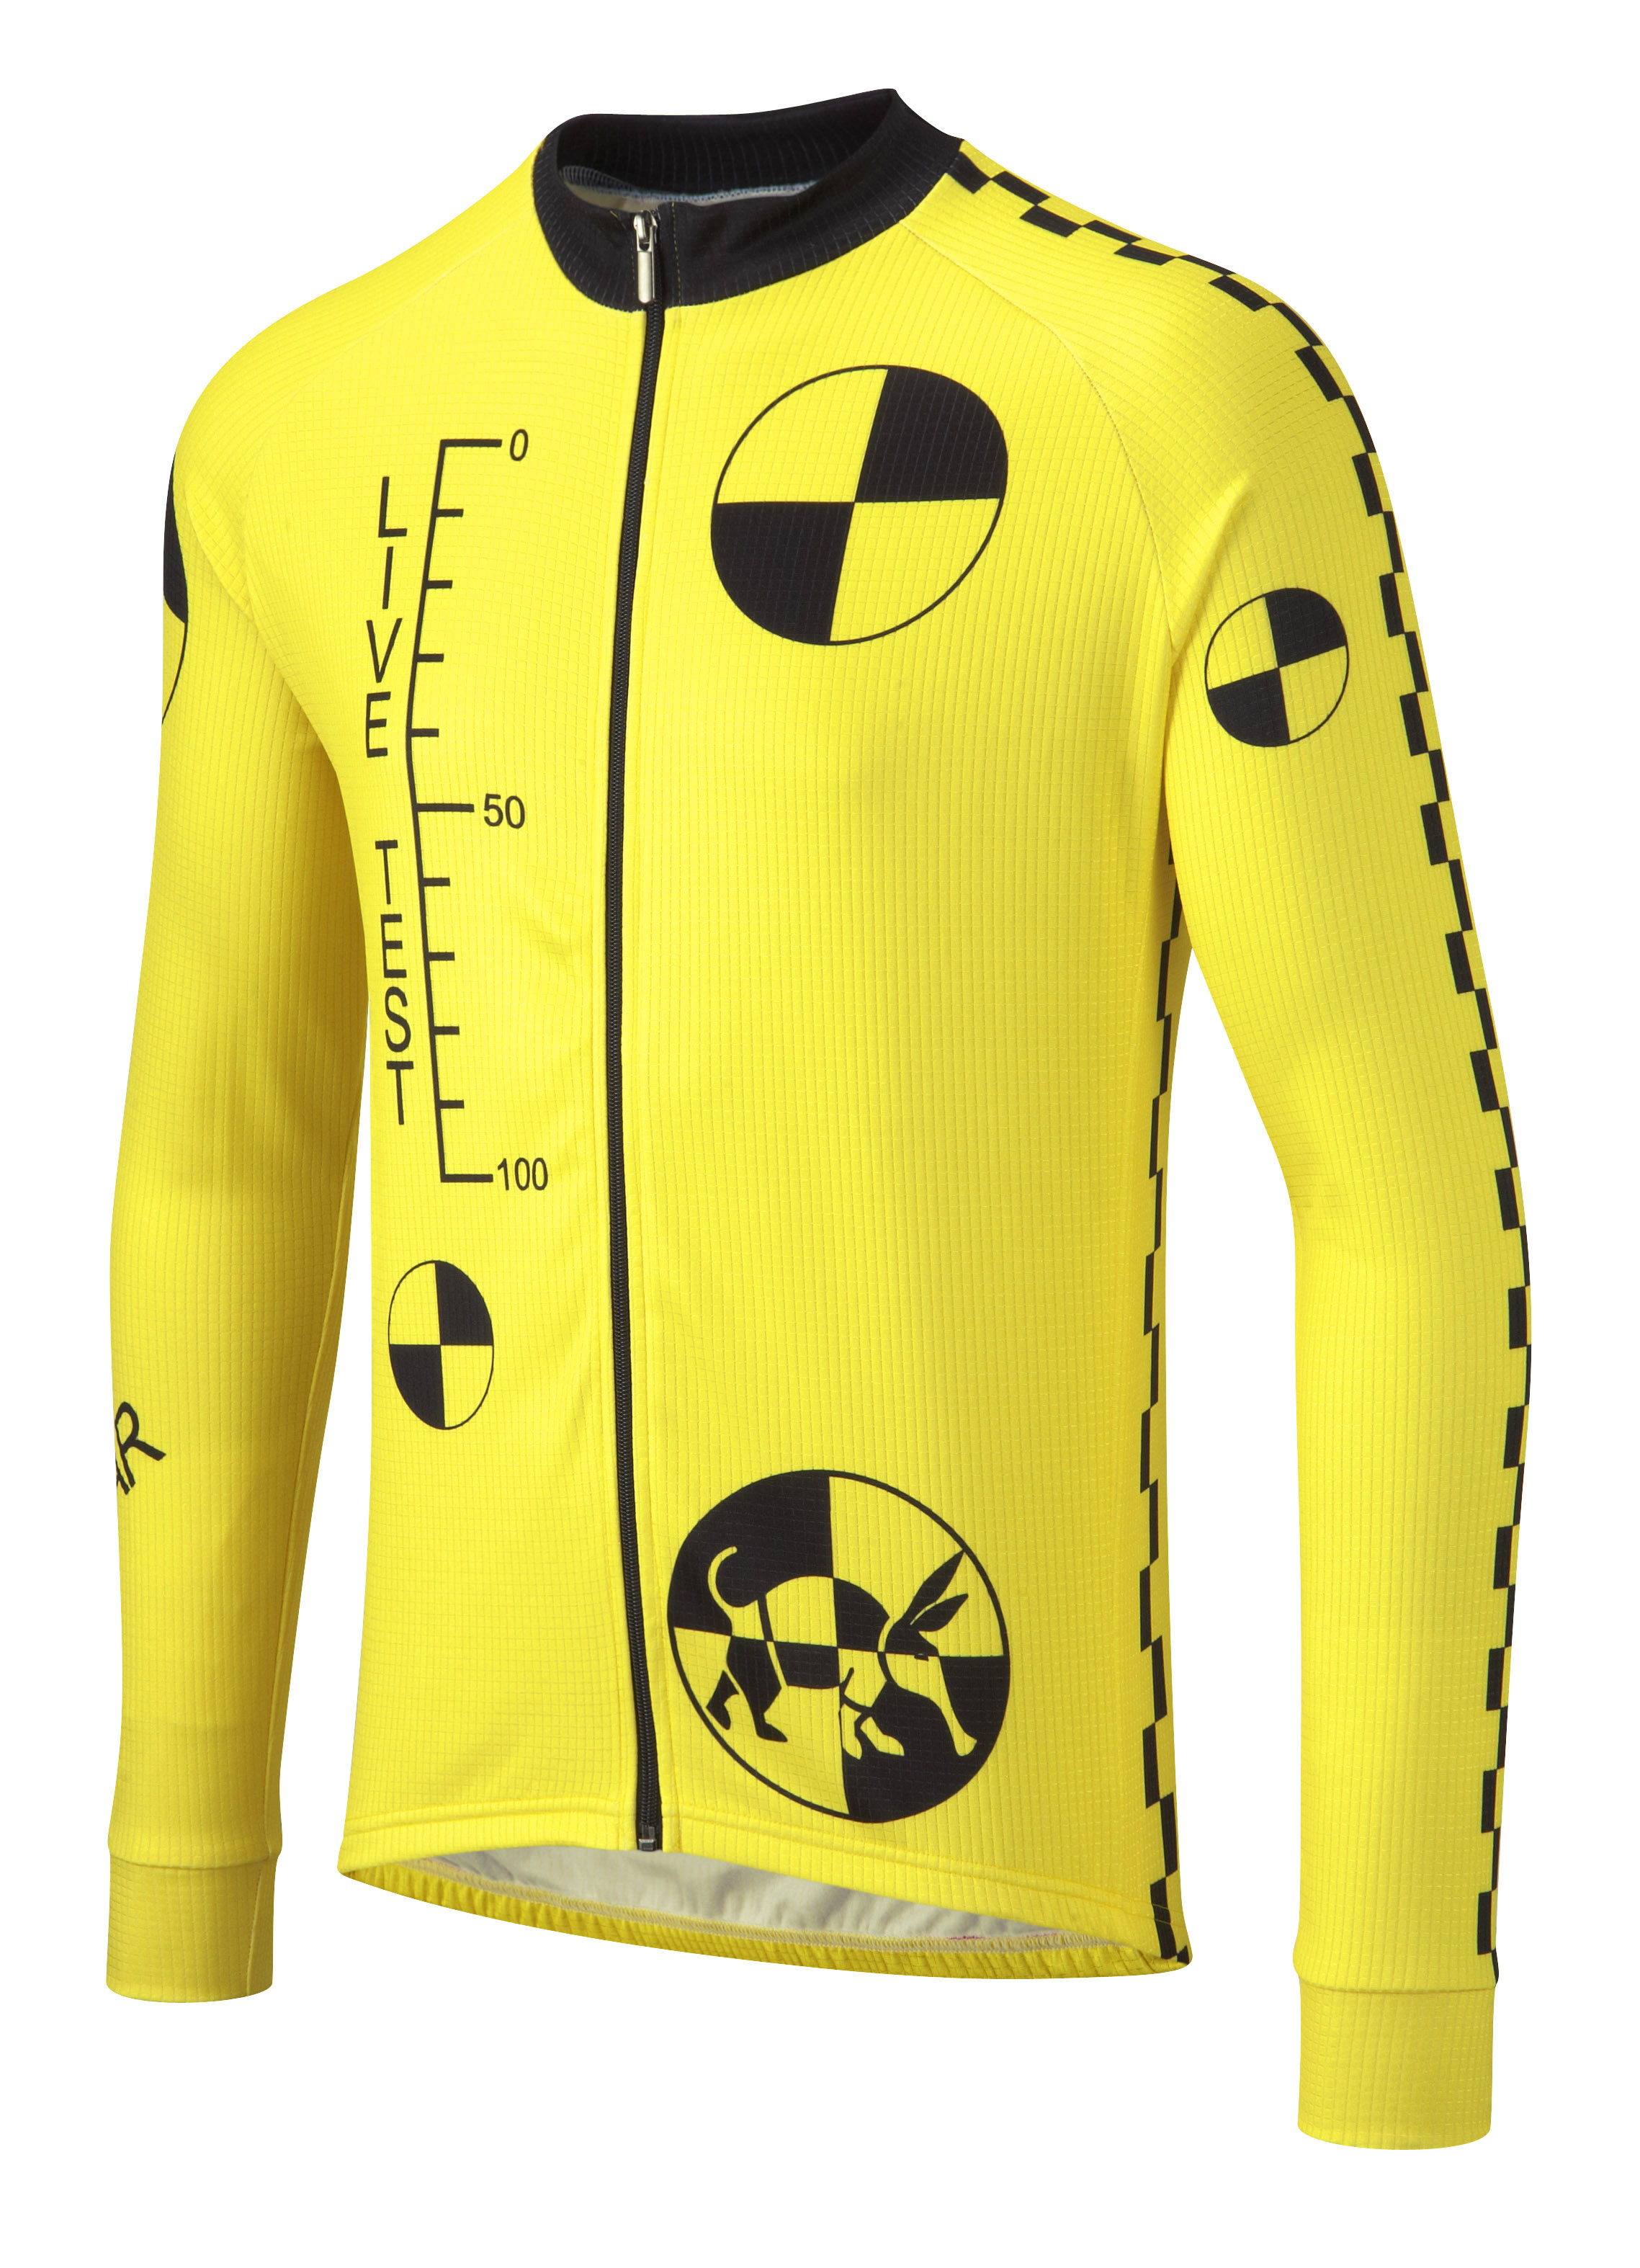 Test Dummy Winter Cycling Jersey Foska Com